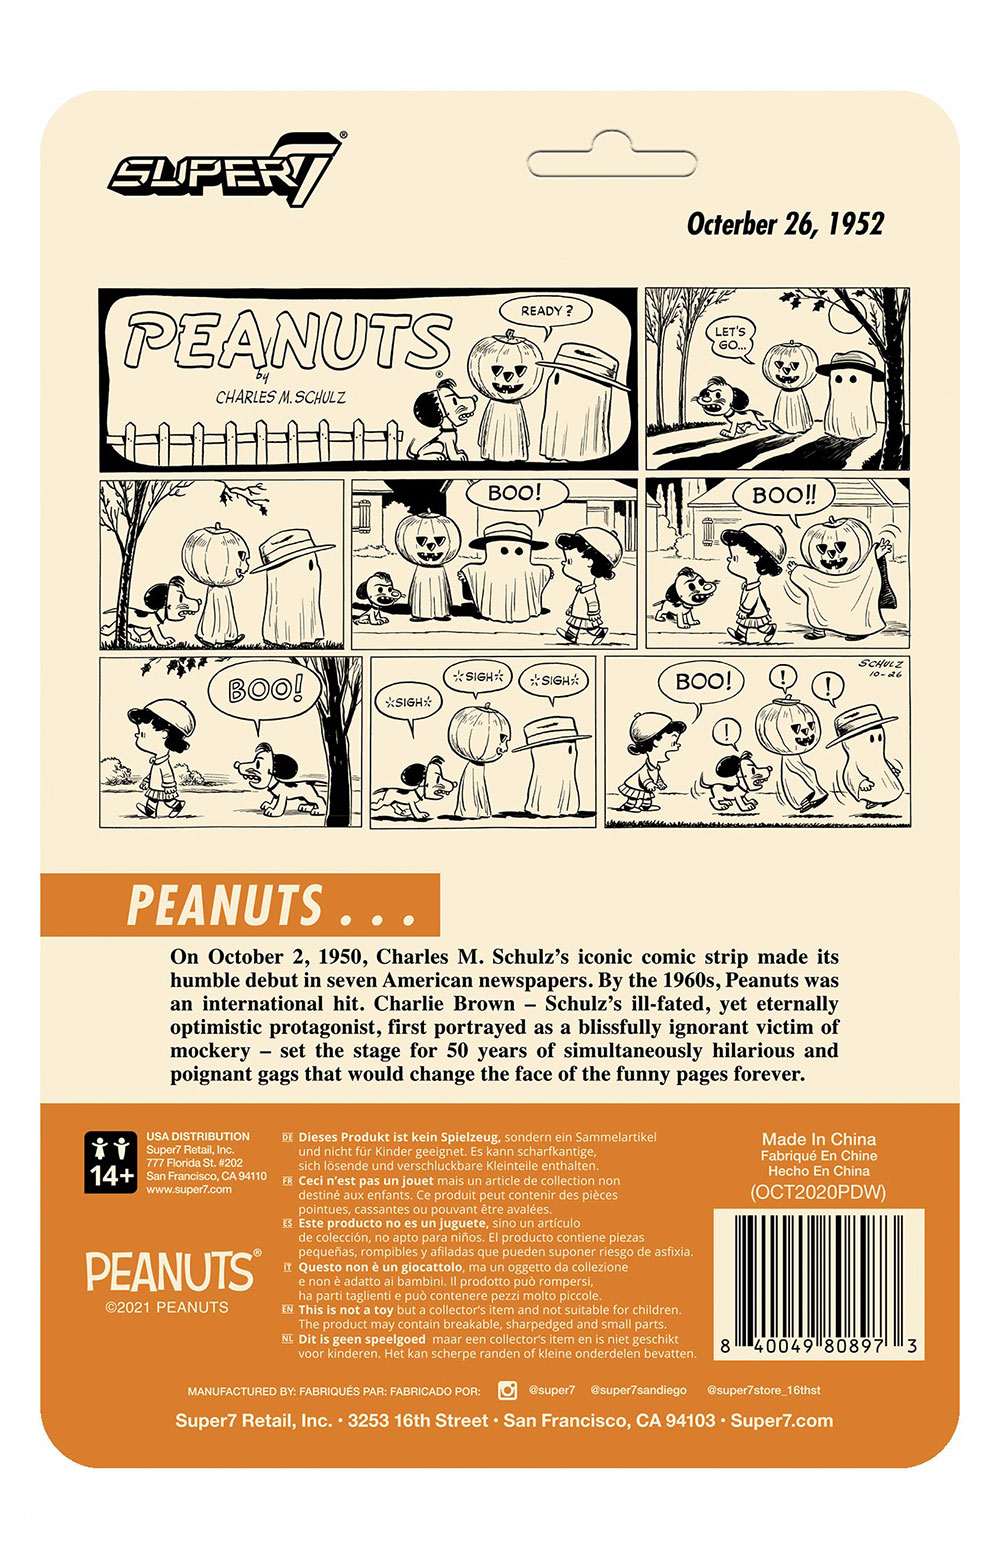 Peanuts ReAction Figure Wave 4 - Masked Snoopy 3